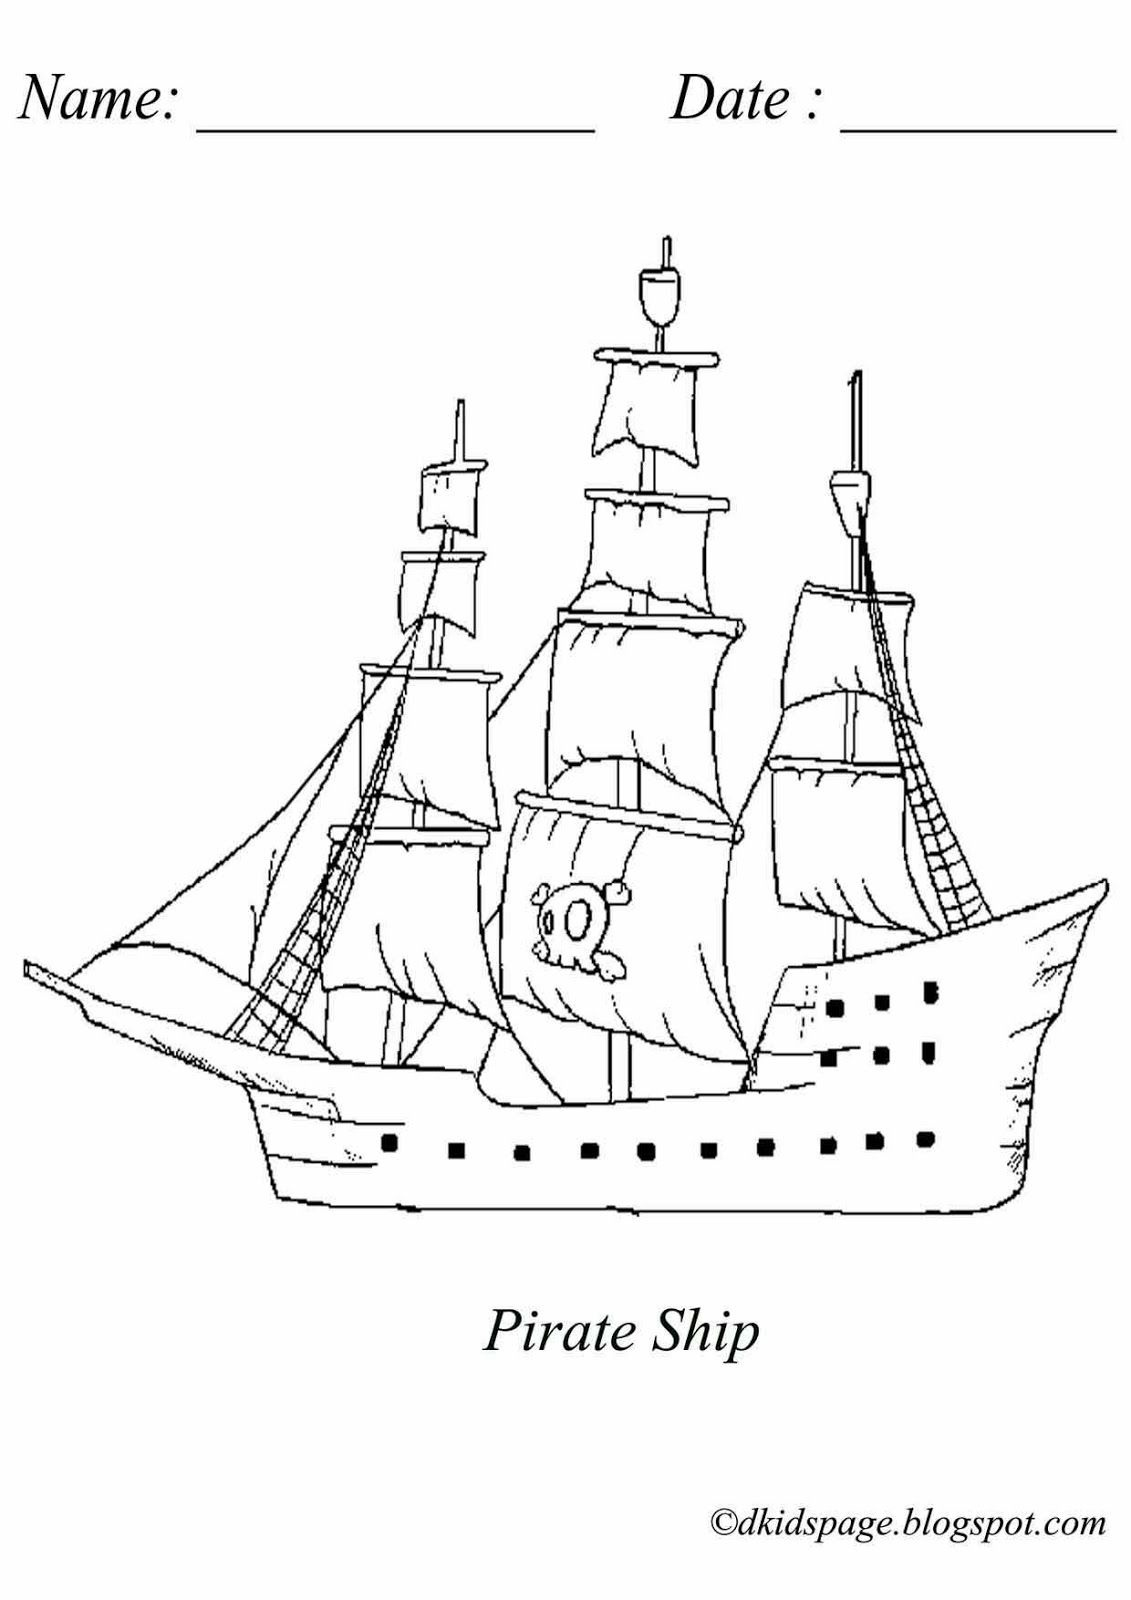 Coloring Picture Of Pirate Ship. Download Free Printable Pirate Ship - Free Printable Boat Pictures